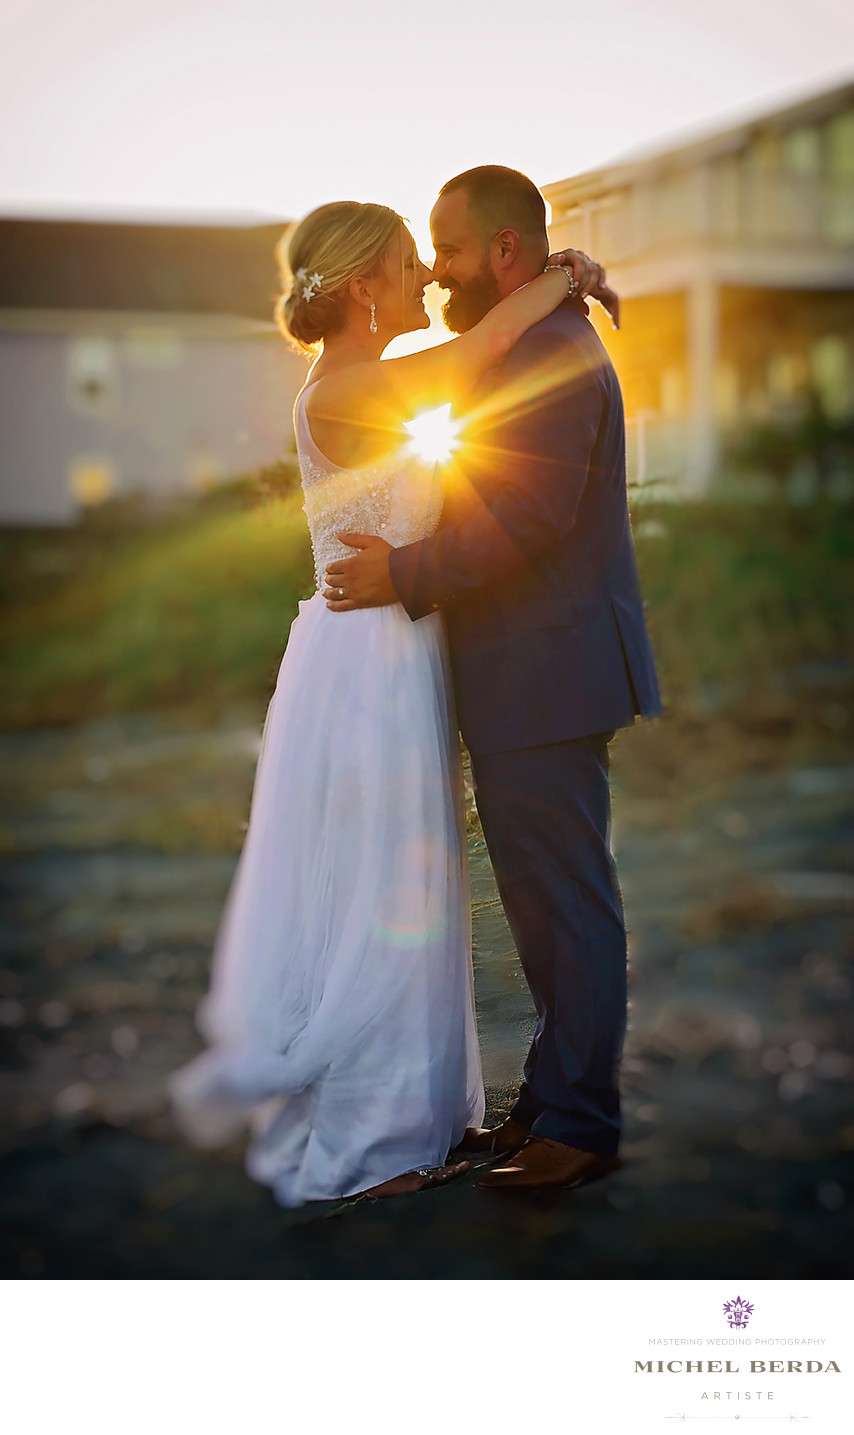 A wedding couple with the perfect sunset photo.